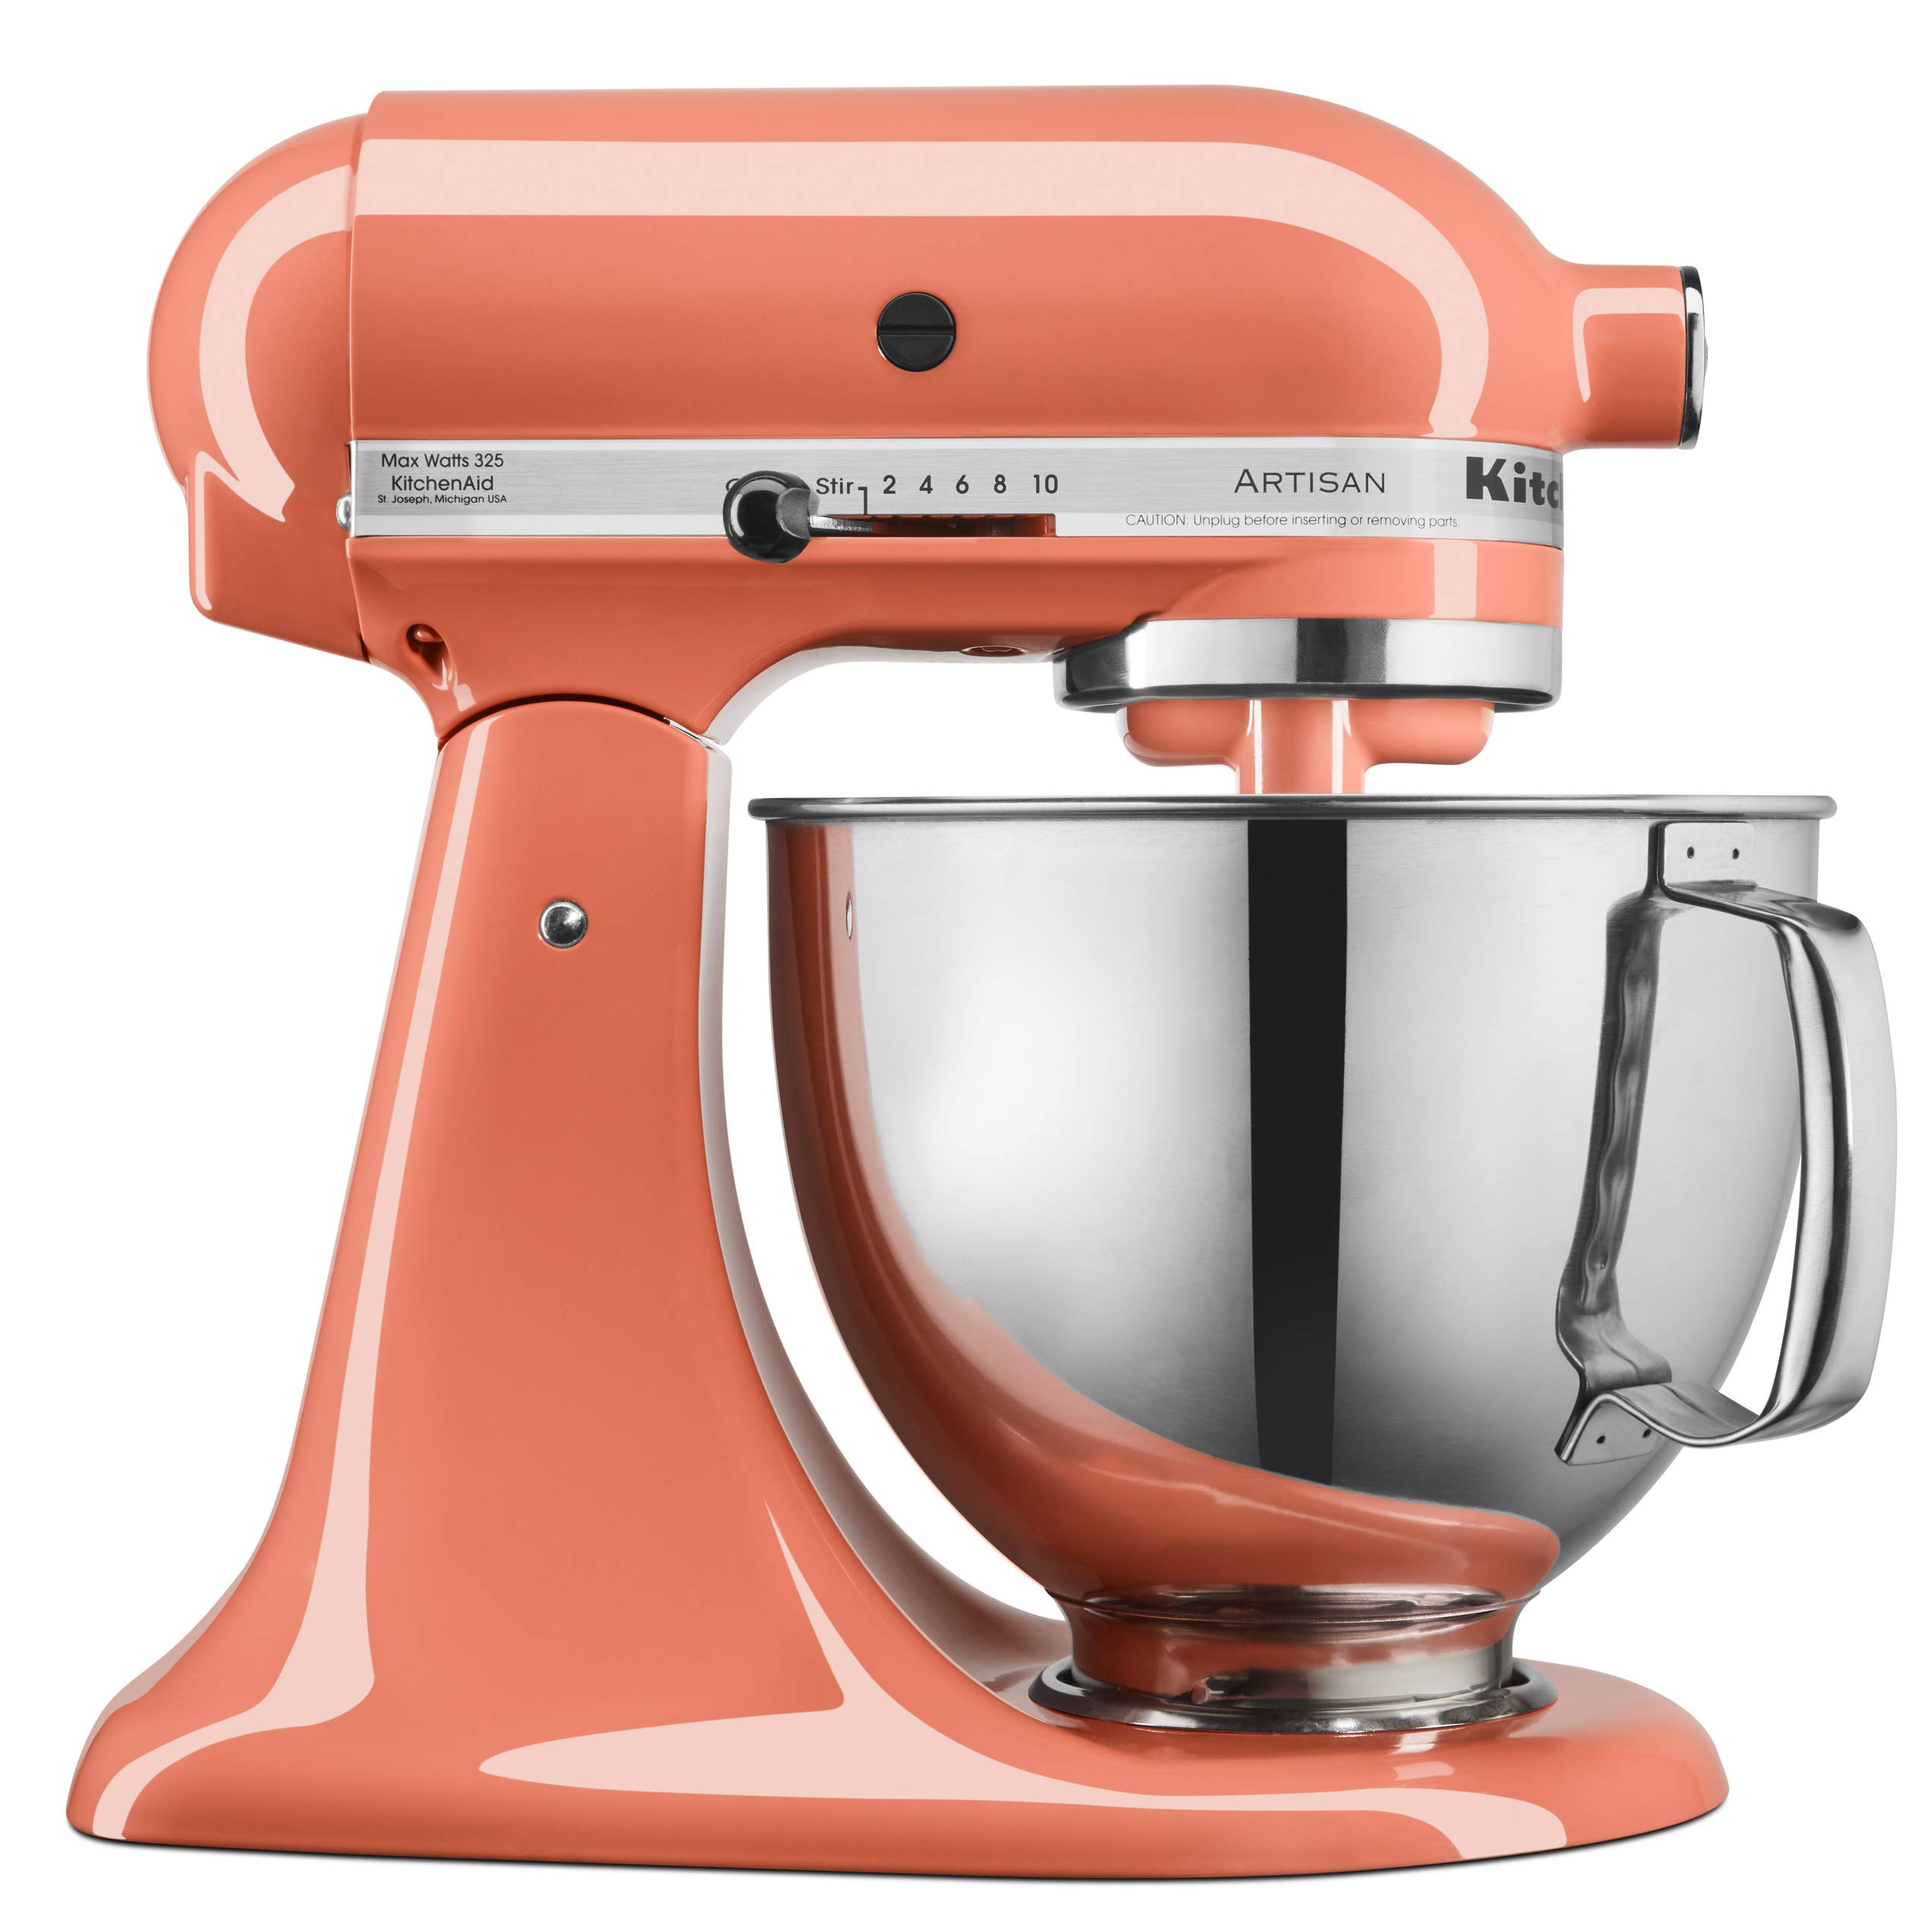 KitchenAid KSM150PSPH Artisan Tilt-Head Stand Mixer with Pouring Shield, 5-Quart, Bird of Paradise by KitchenAid